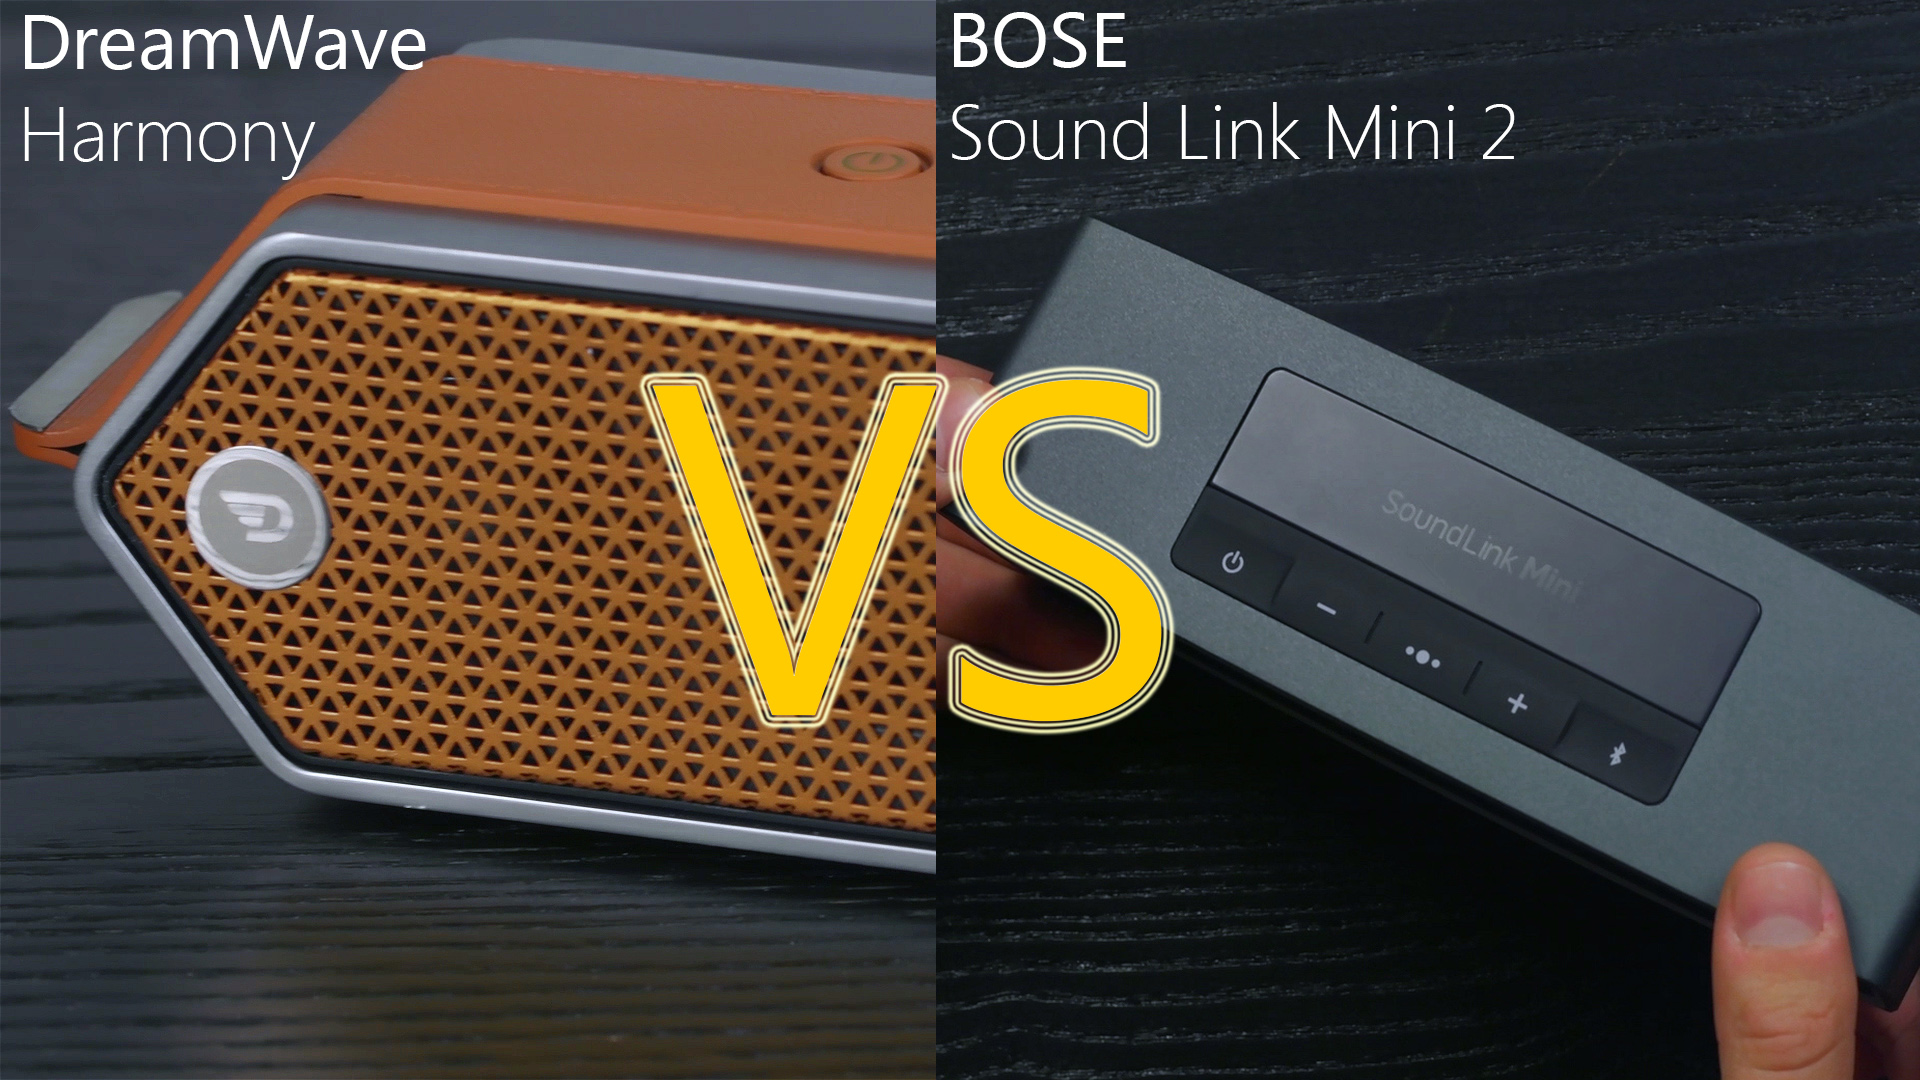 DreamWave Harmony vs. Bose SoundLink Mini 2